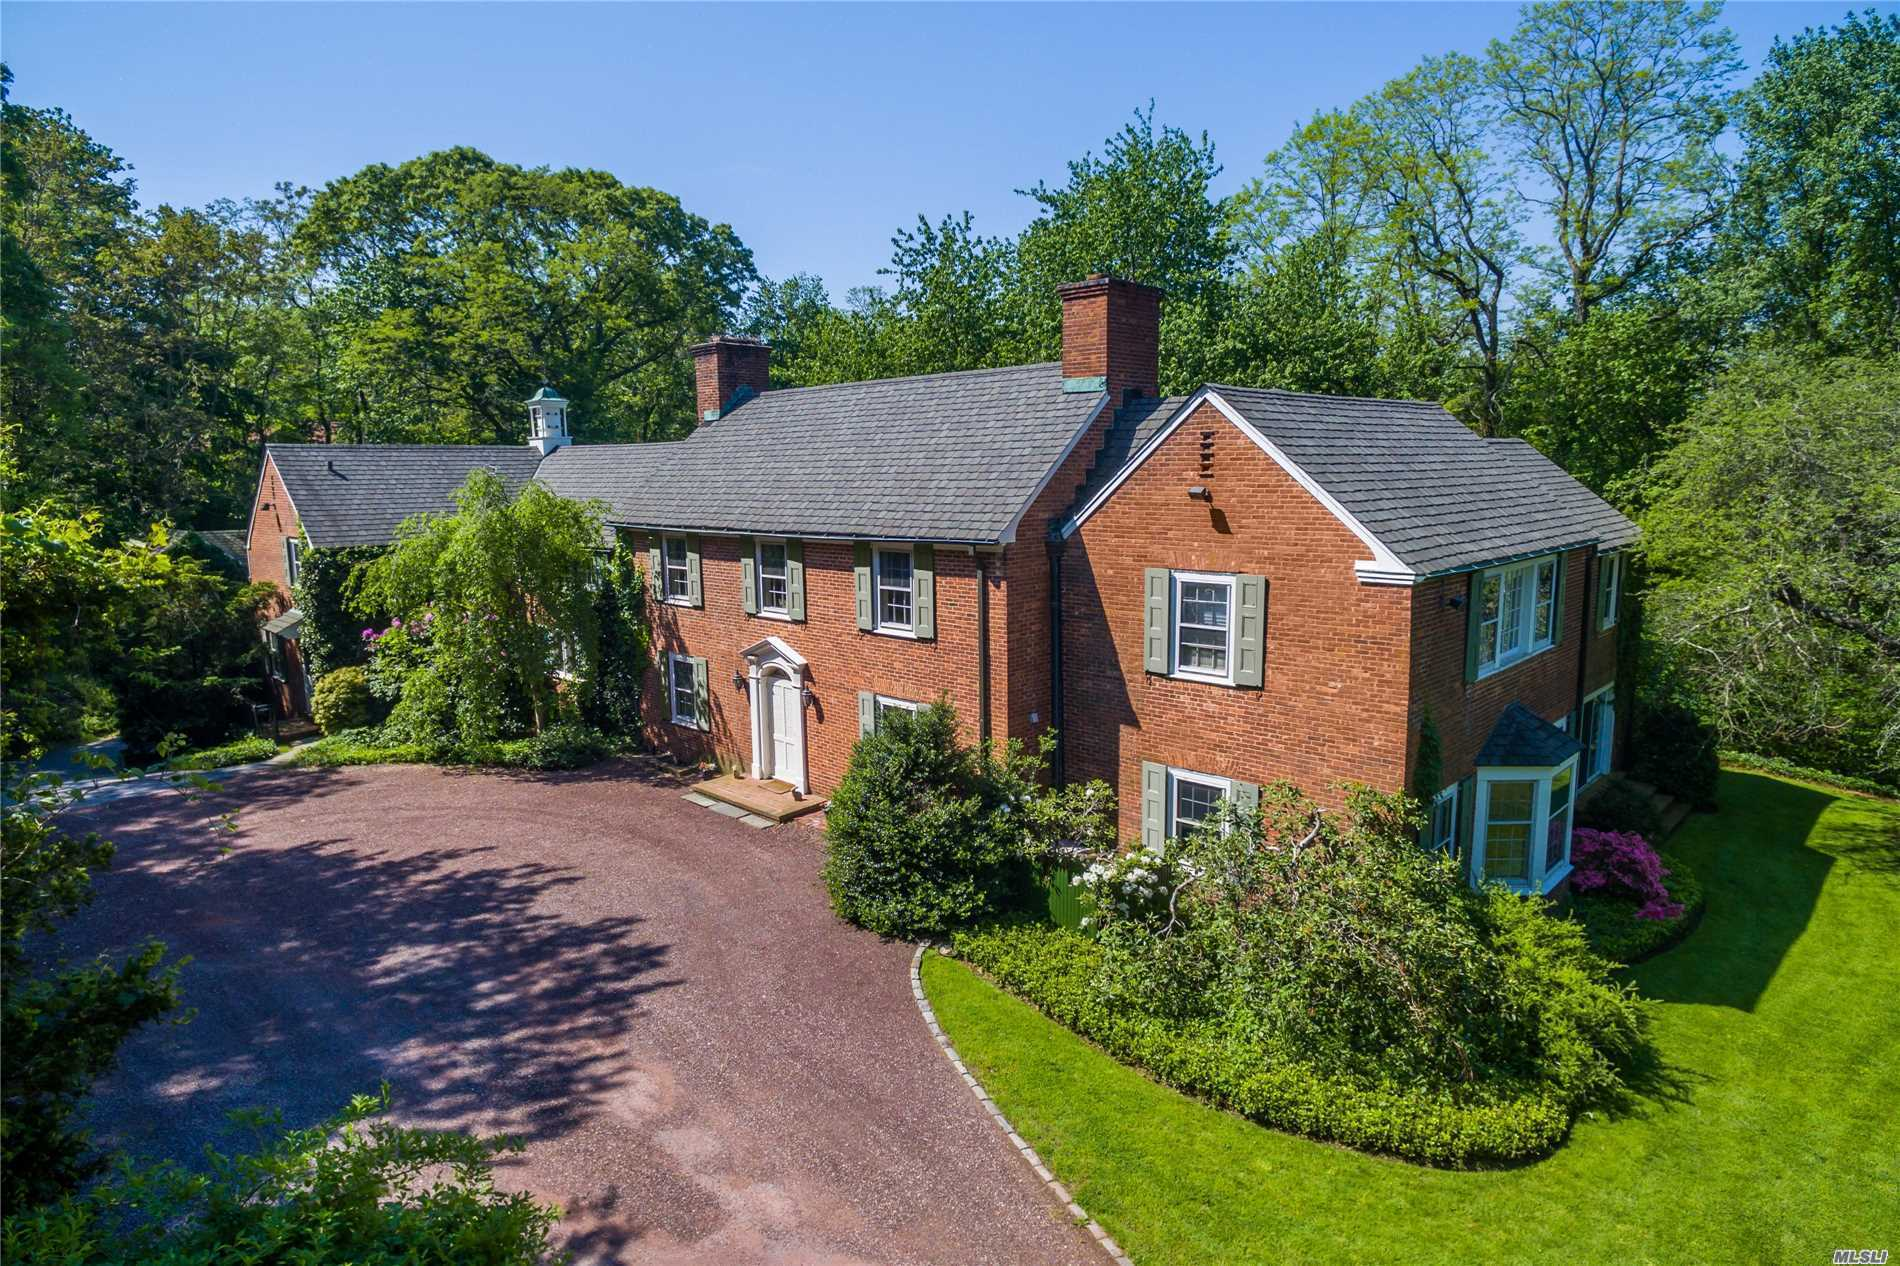 Come see the fresh new look!  Traditional Secluded Brick Colonial in the heart of Mill Neck with Locust Valley's award winning Schools.The Locust Valley High School has International Baccalaureate Program recognized world wide for it's high academic standards.The Main House has large inviting rooms with attached 3 car garage.There is separate 3 car garage with high ceiling loft.Can be your dream home!